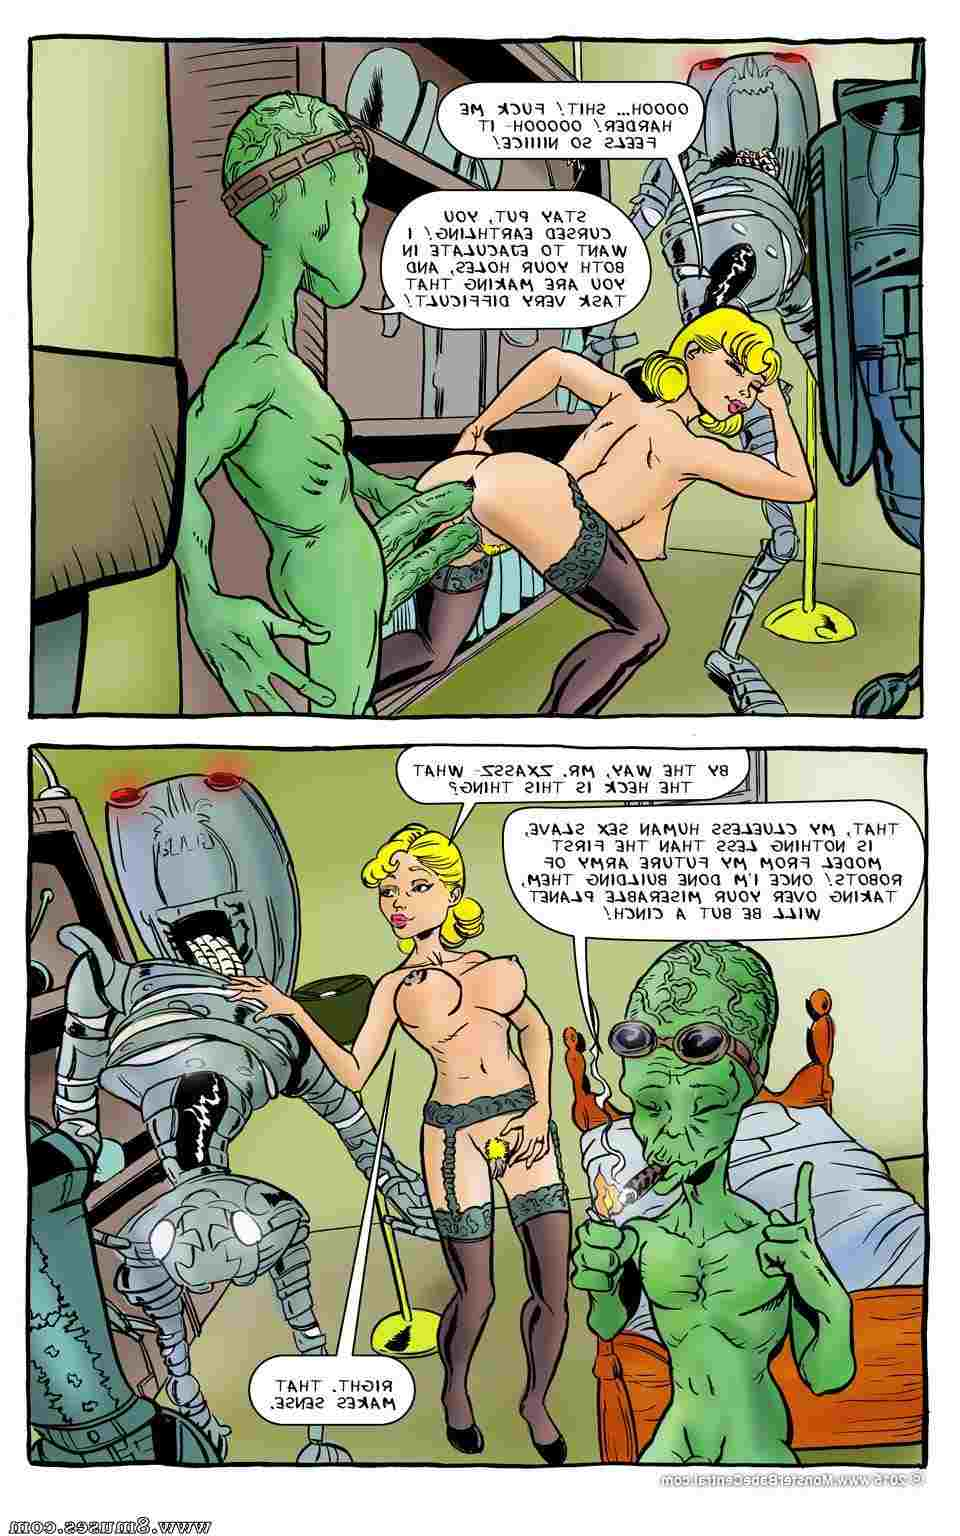 Central-Comics/Monster-Babe-Central/Monster-Channel Monster_Channel__8muses_-_Sex_and_Porn_Comics_242.jpg